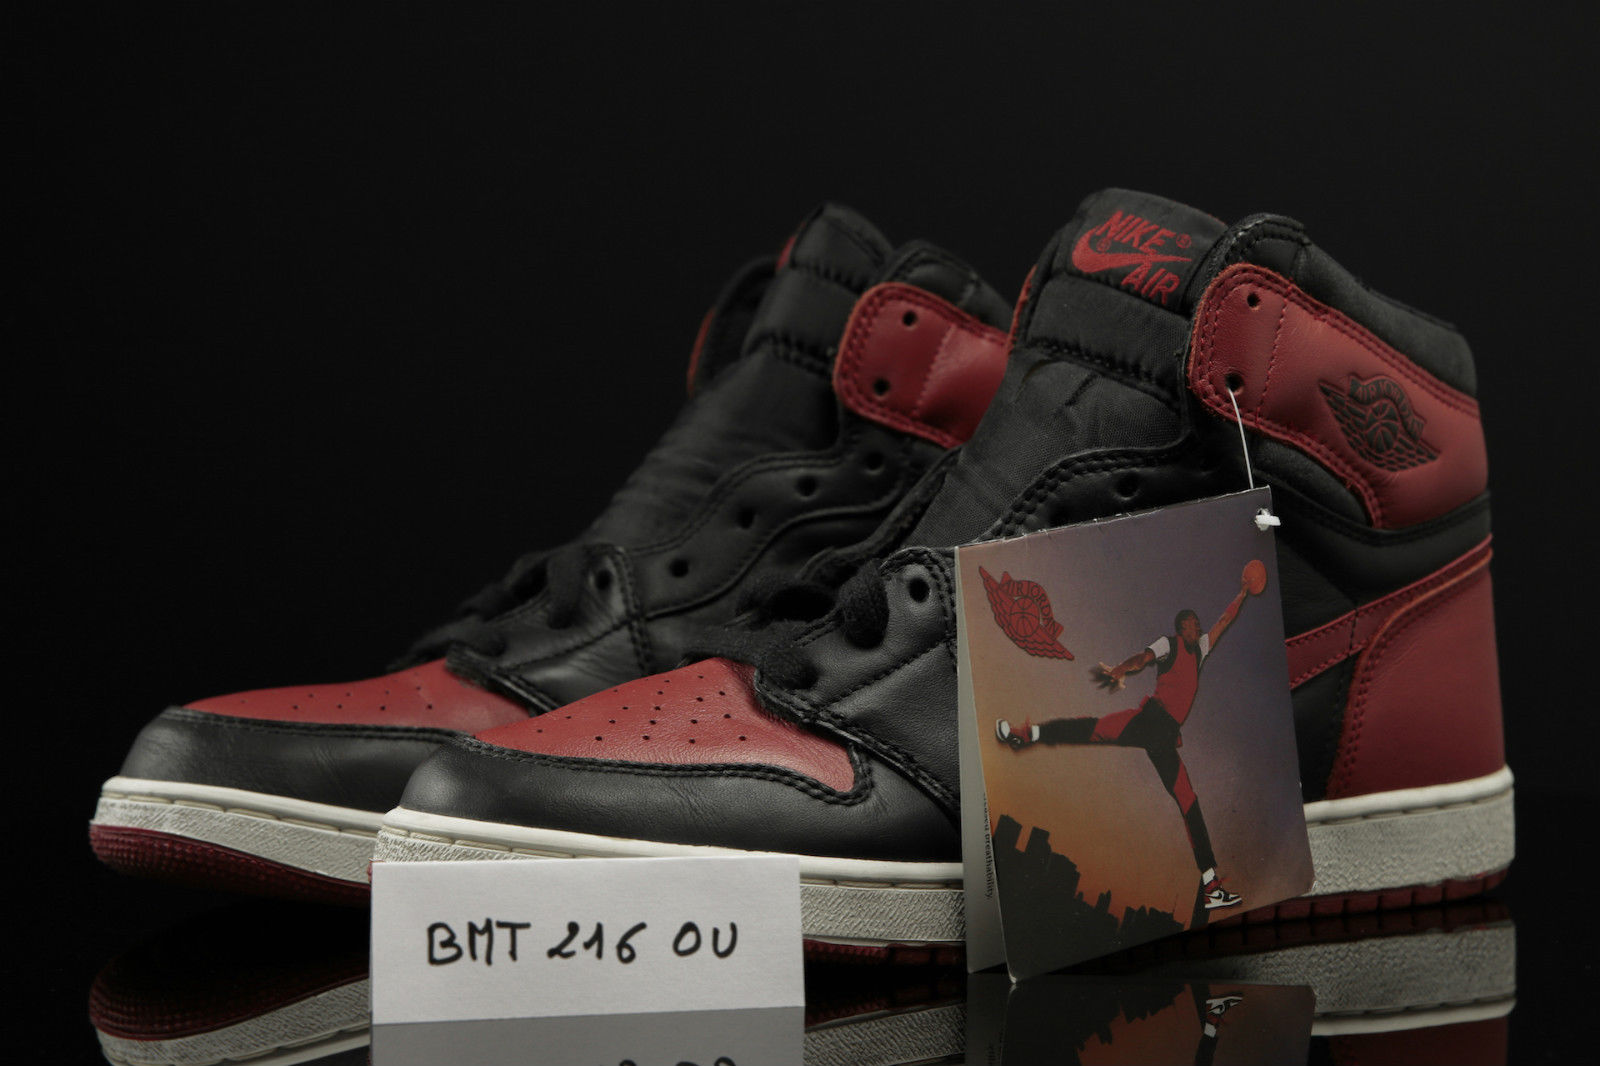 de05f0f823f056 The 23 Most Rare and Expensive Air Jordans on eBay Right Now